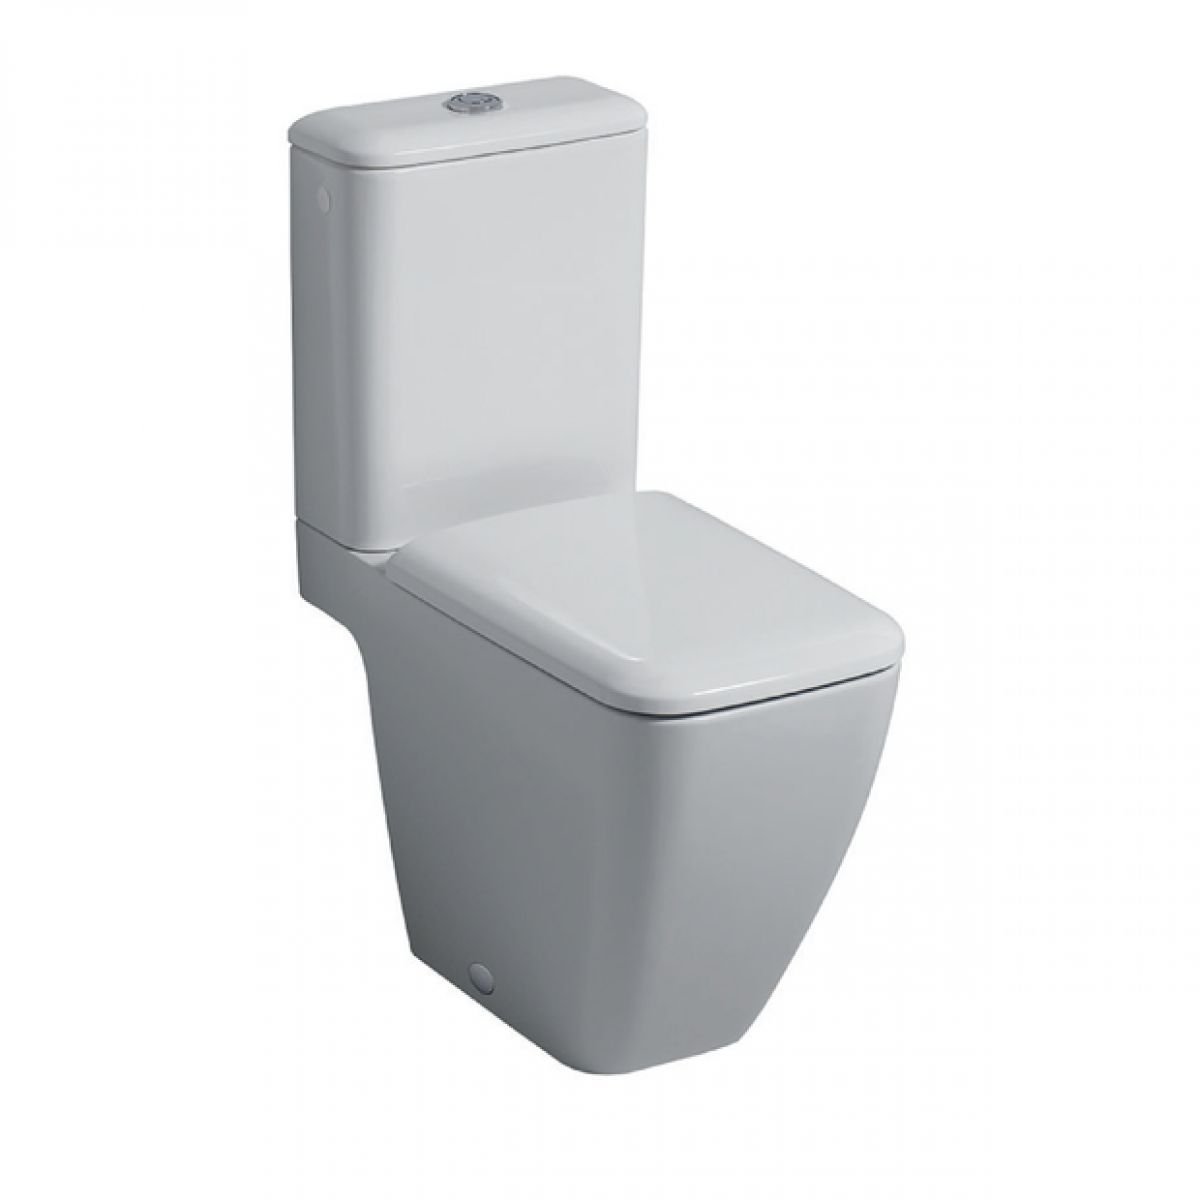 Geberit icon square close coupled toilet bathrooms for Gerberit toilet